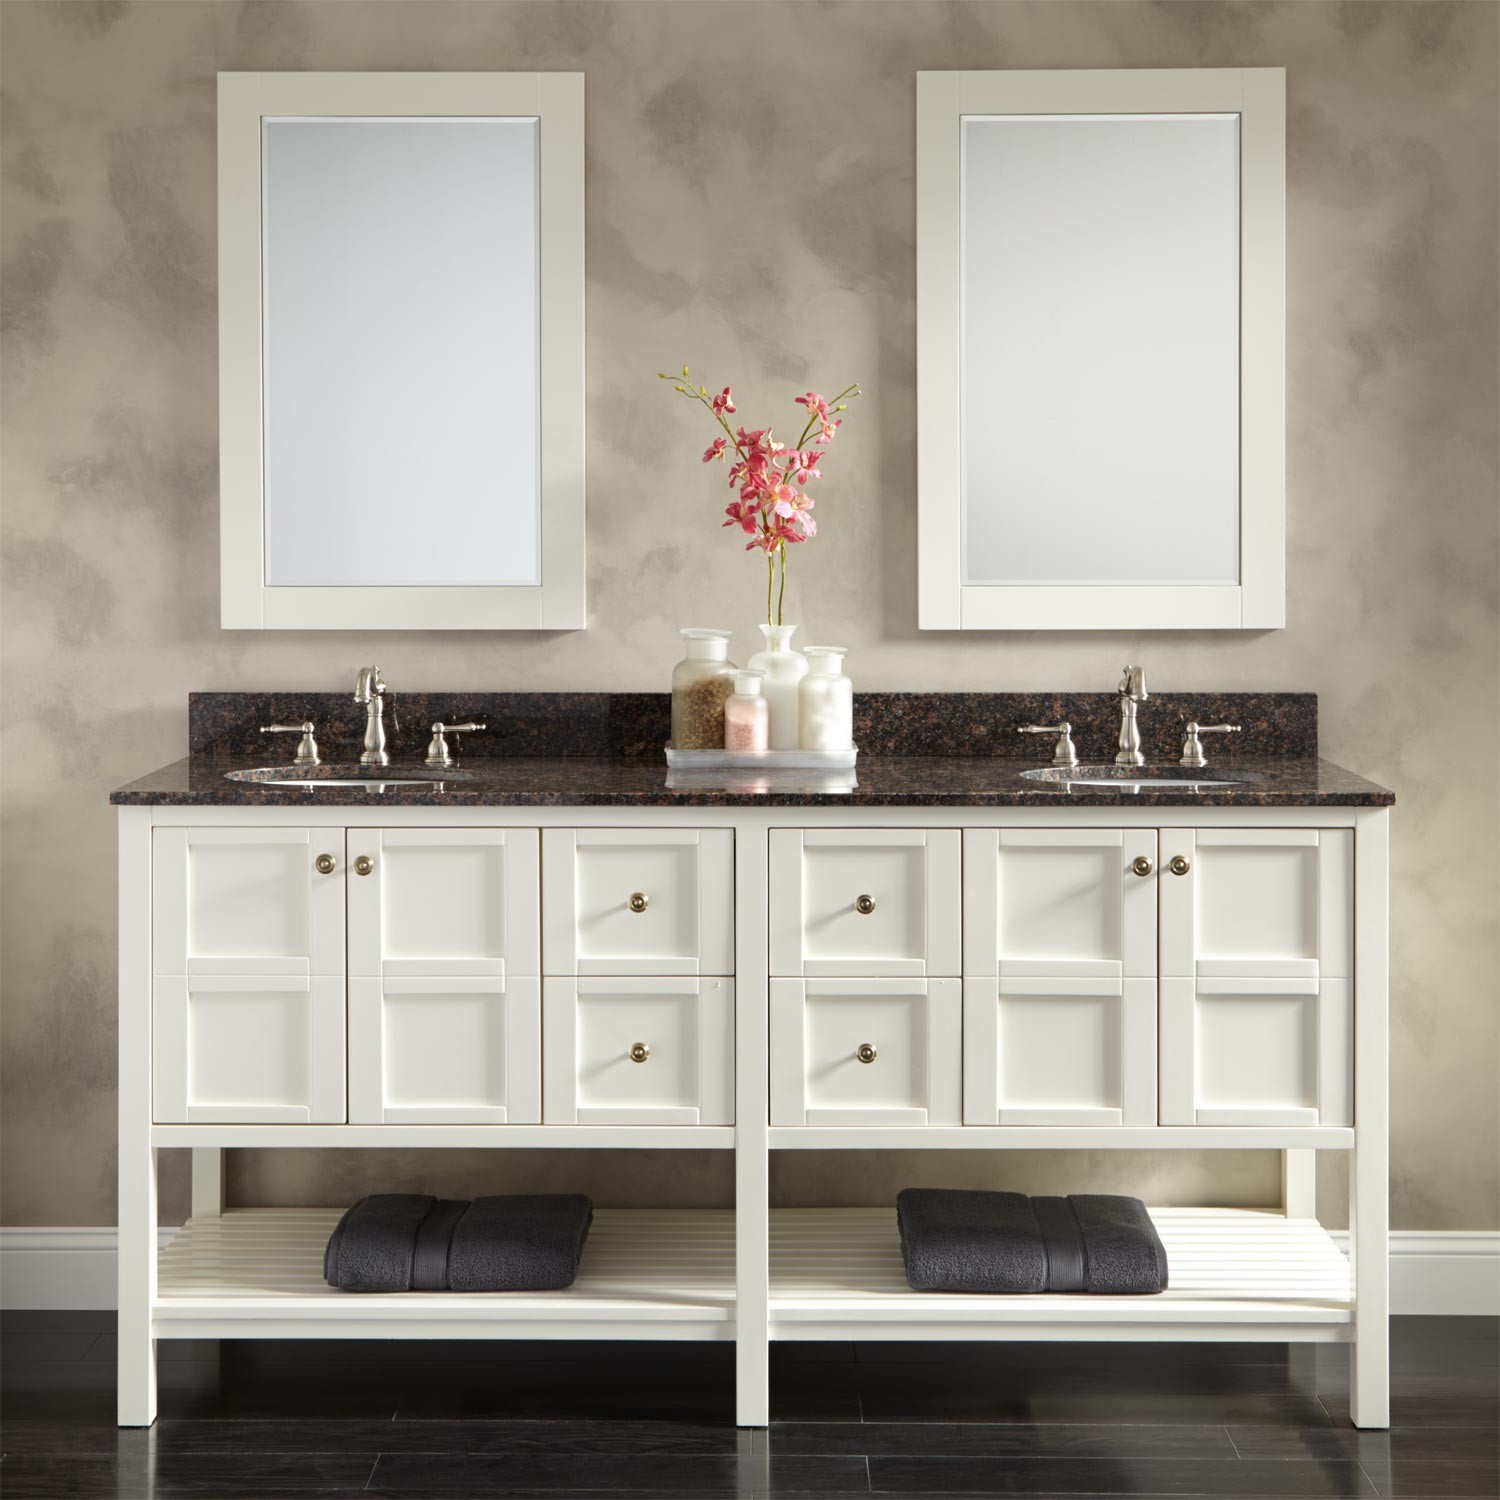 Astounding Design Of The Contemporary Bathroom Vanities With White Cabinets With Double Black Sink And Shelves For Towel Ideas